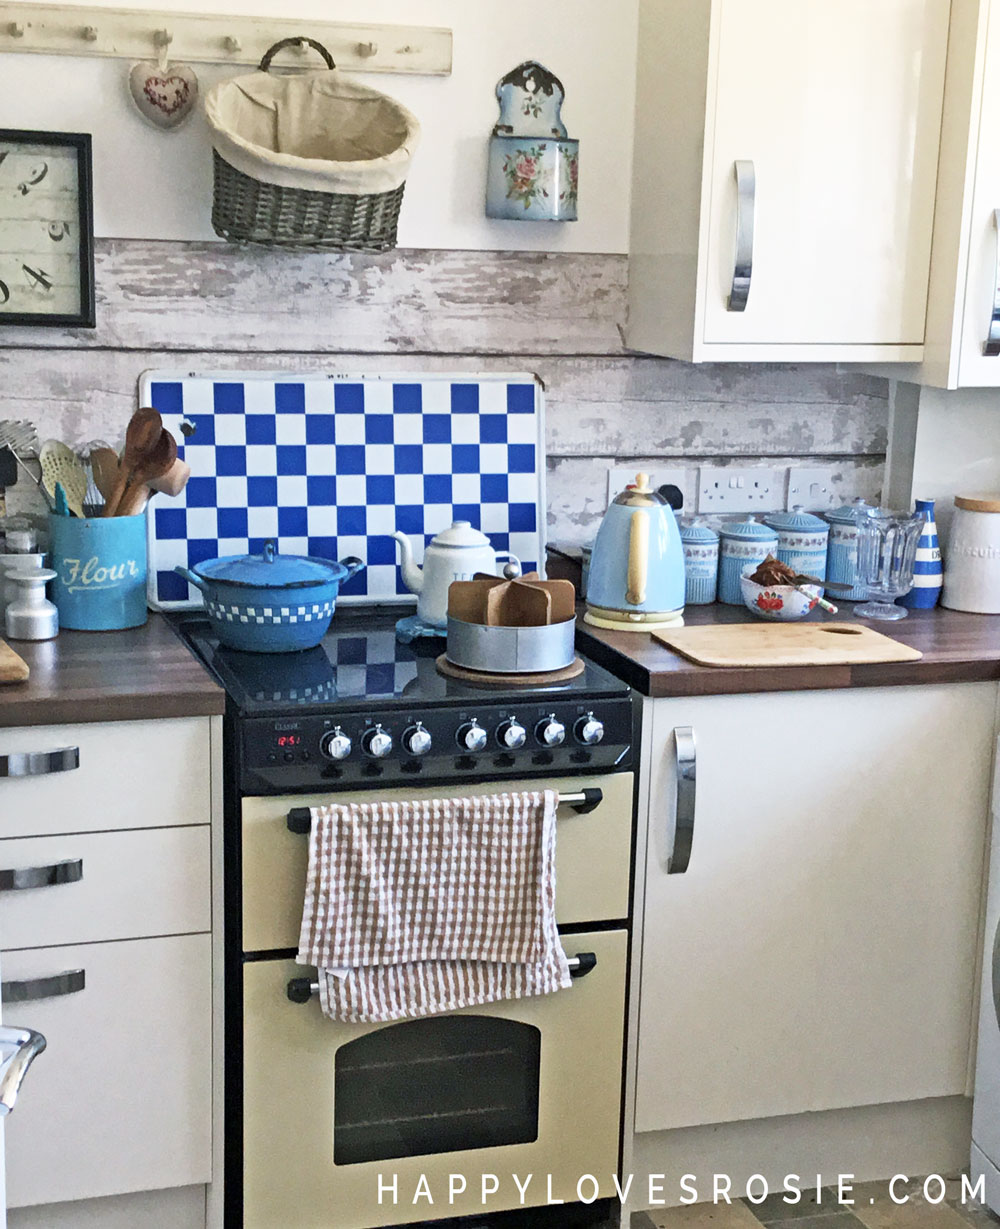 brown and blue enamel kitchen